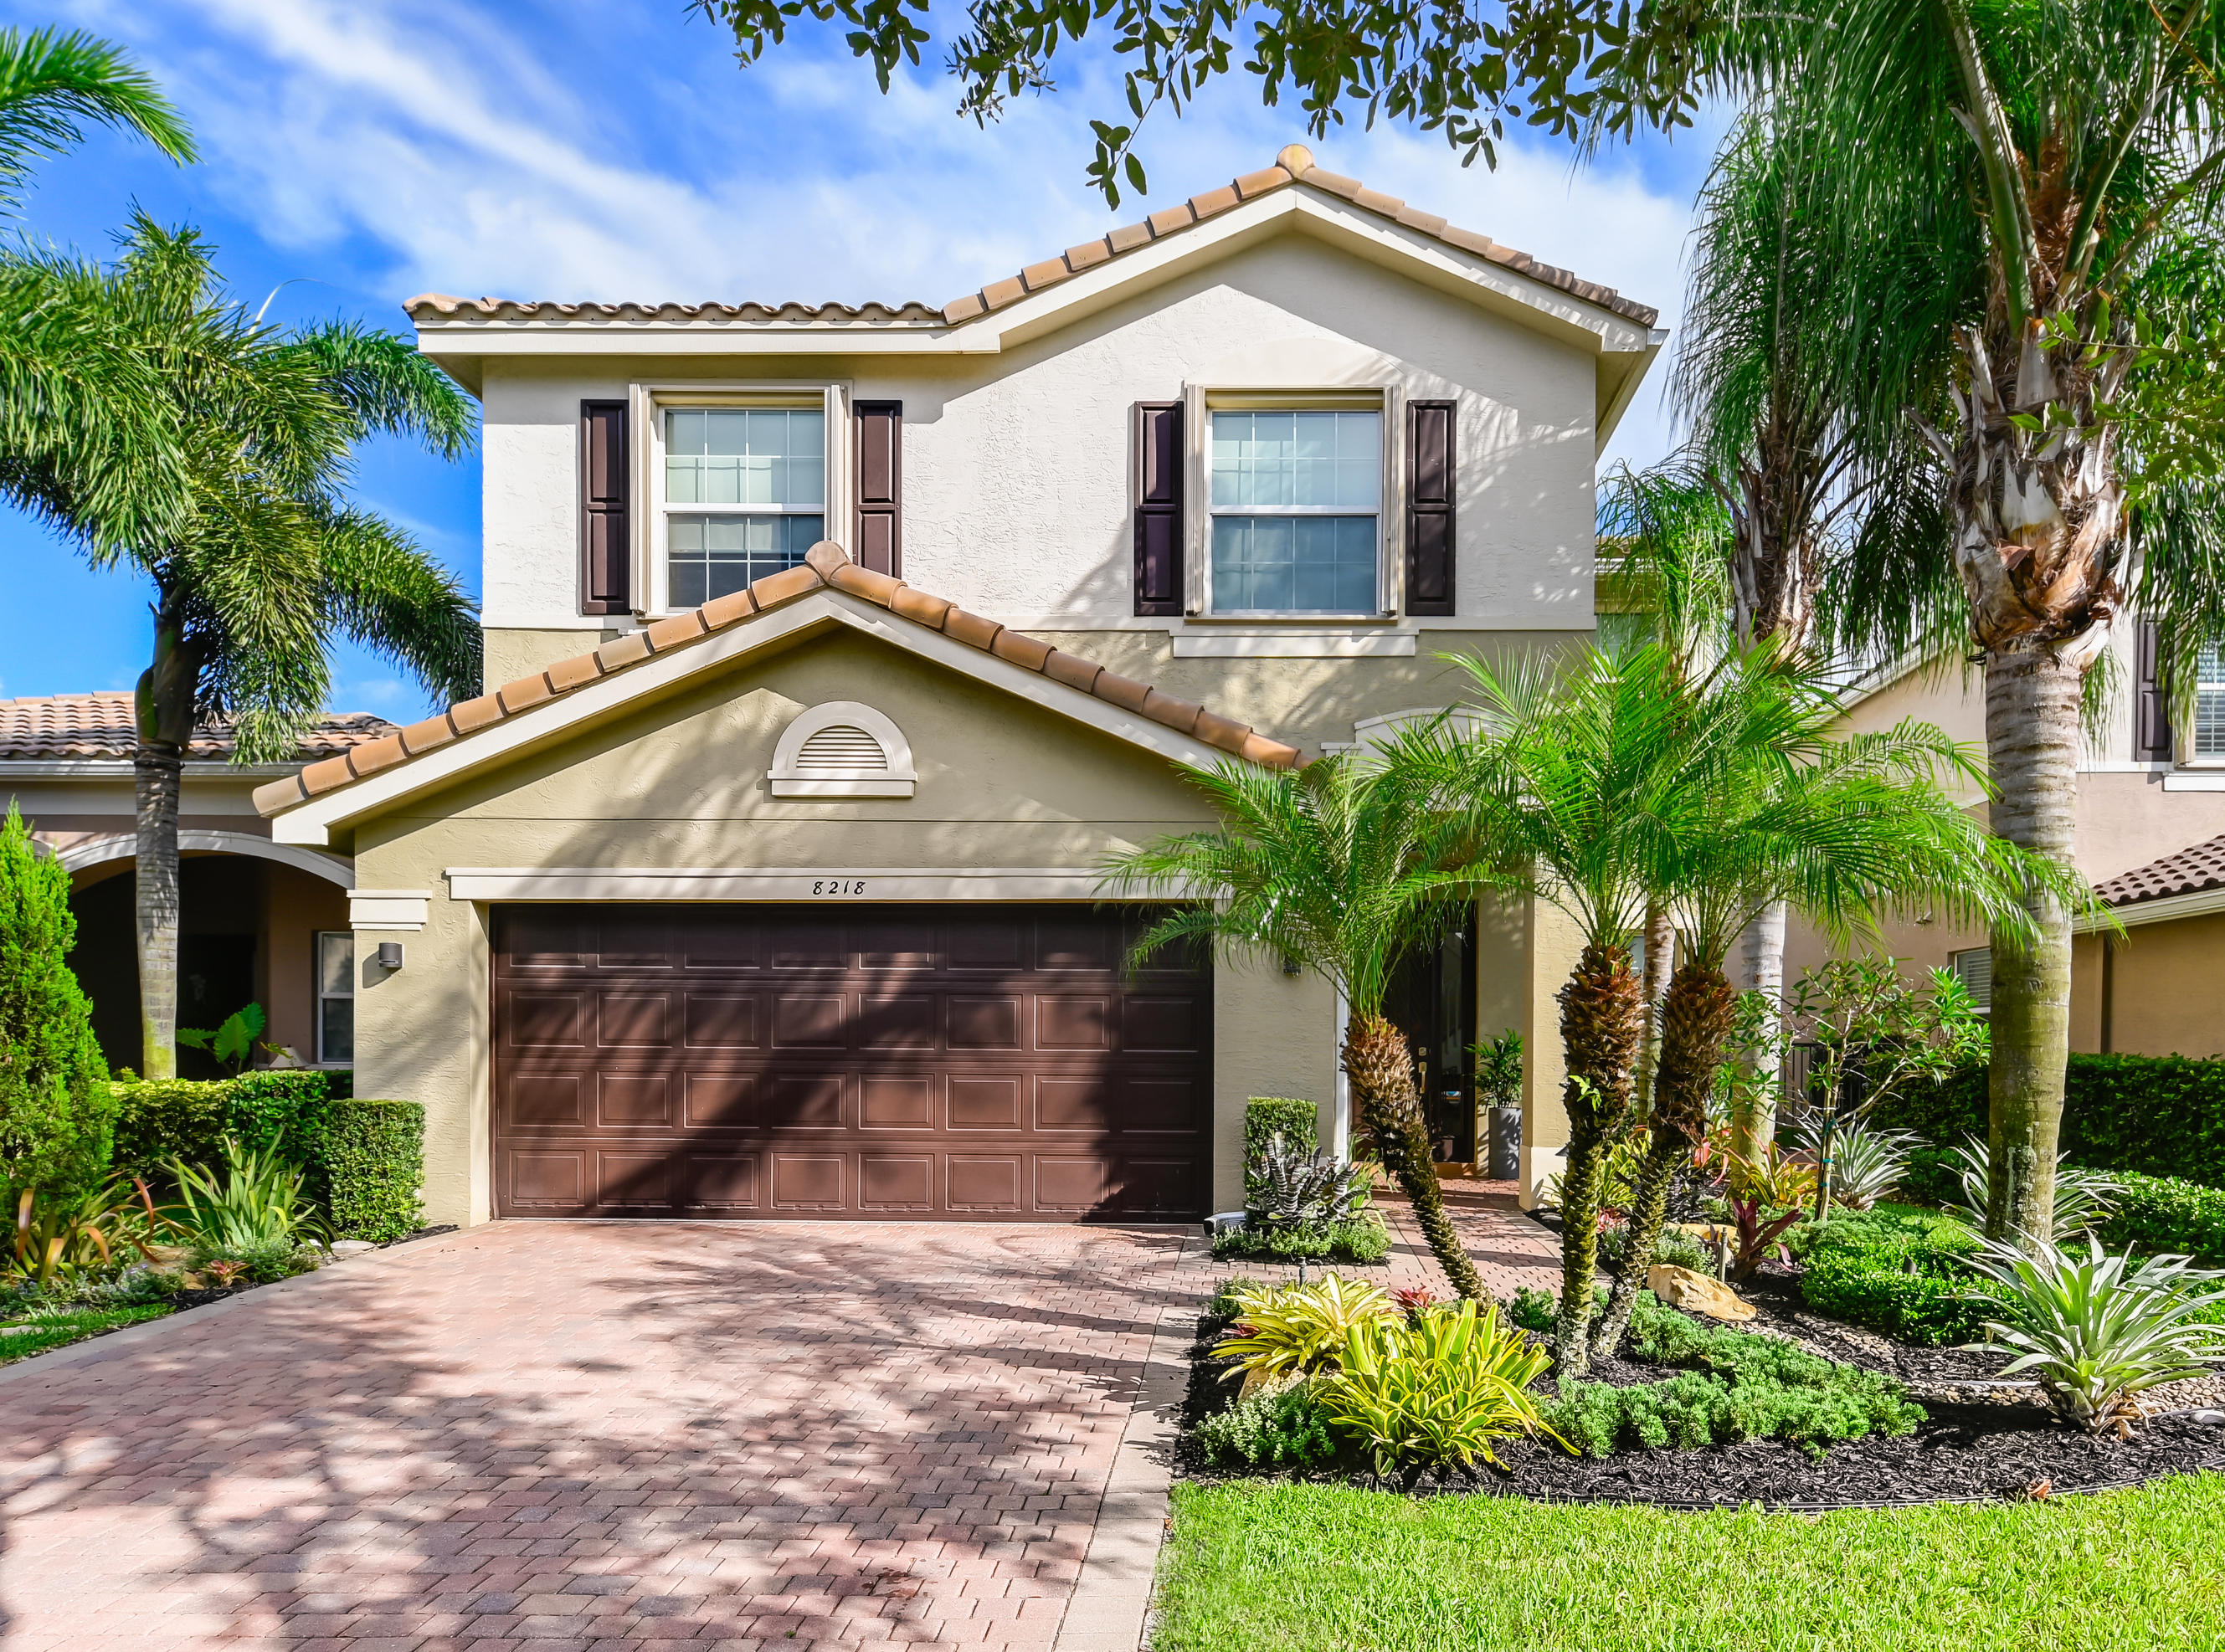 8218 Adrina Shores Way  Boynton Beach, FL 33473